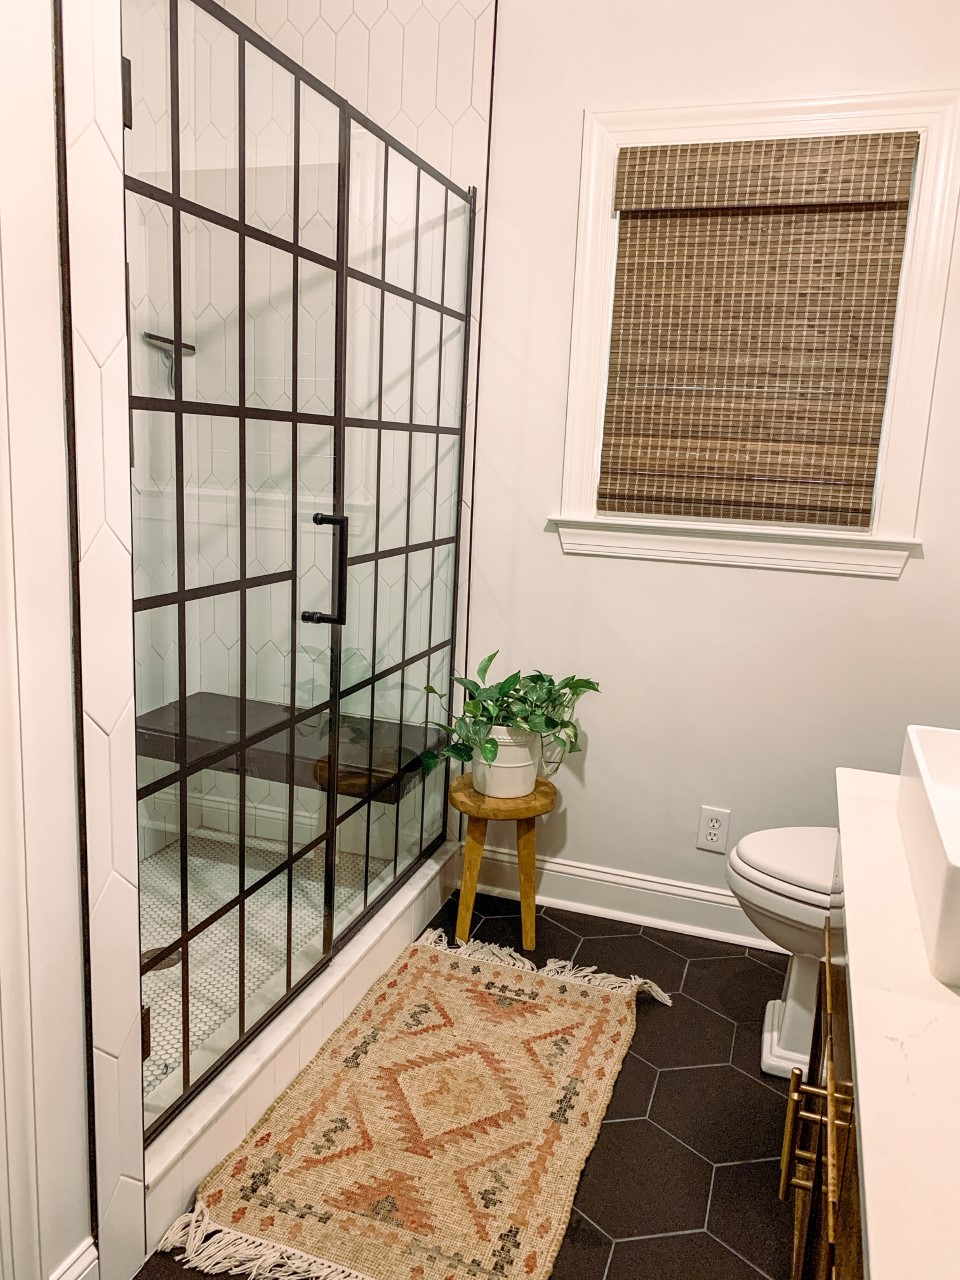 Texture For Days In This Modern Boho Bathroom Featuring The Dreamline Unidoor Toulon Shower Door In 2020 Shower Doors Gorgeous Bathroom Designs Bathroom Decor Colors